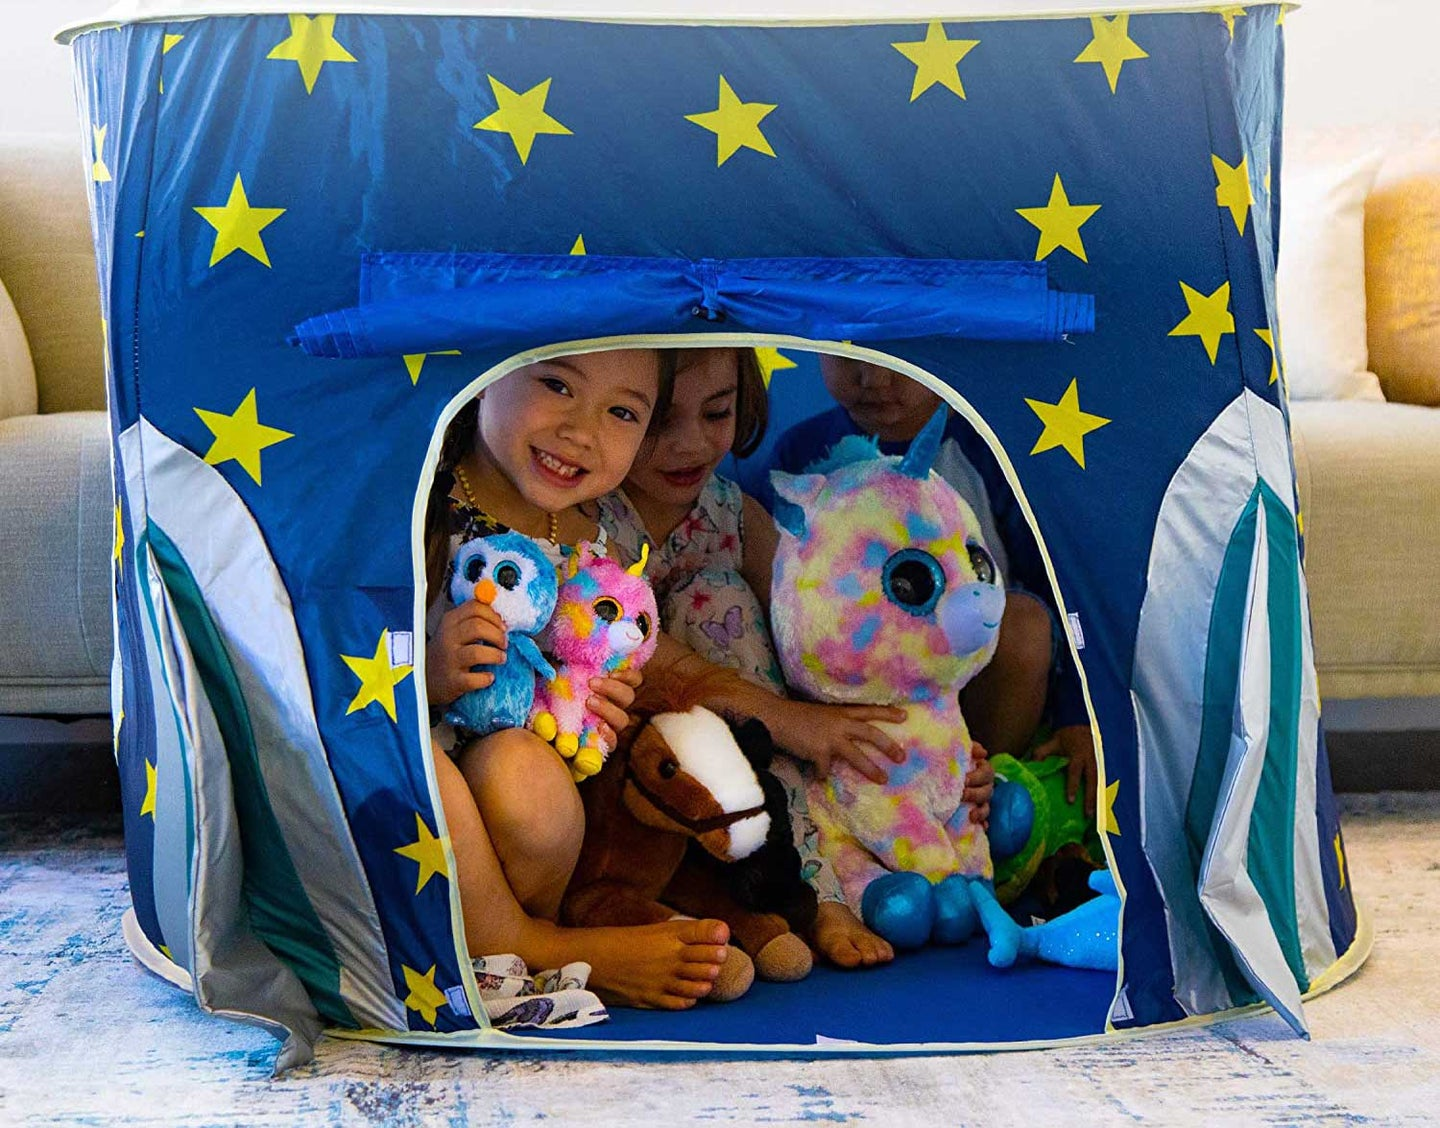 Two children playing in a tent